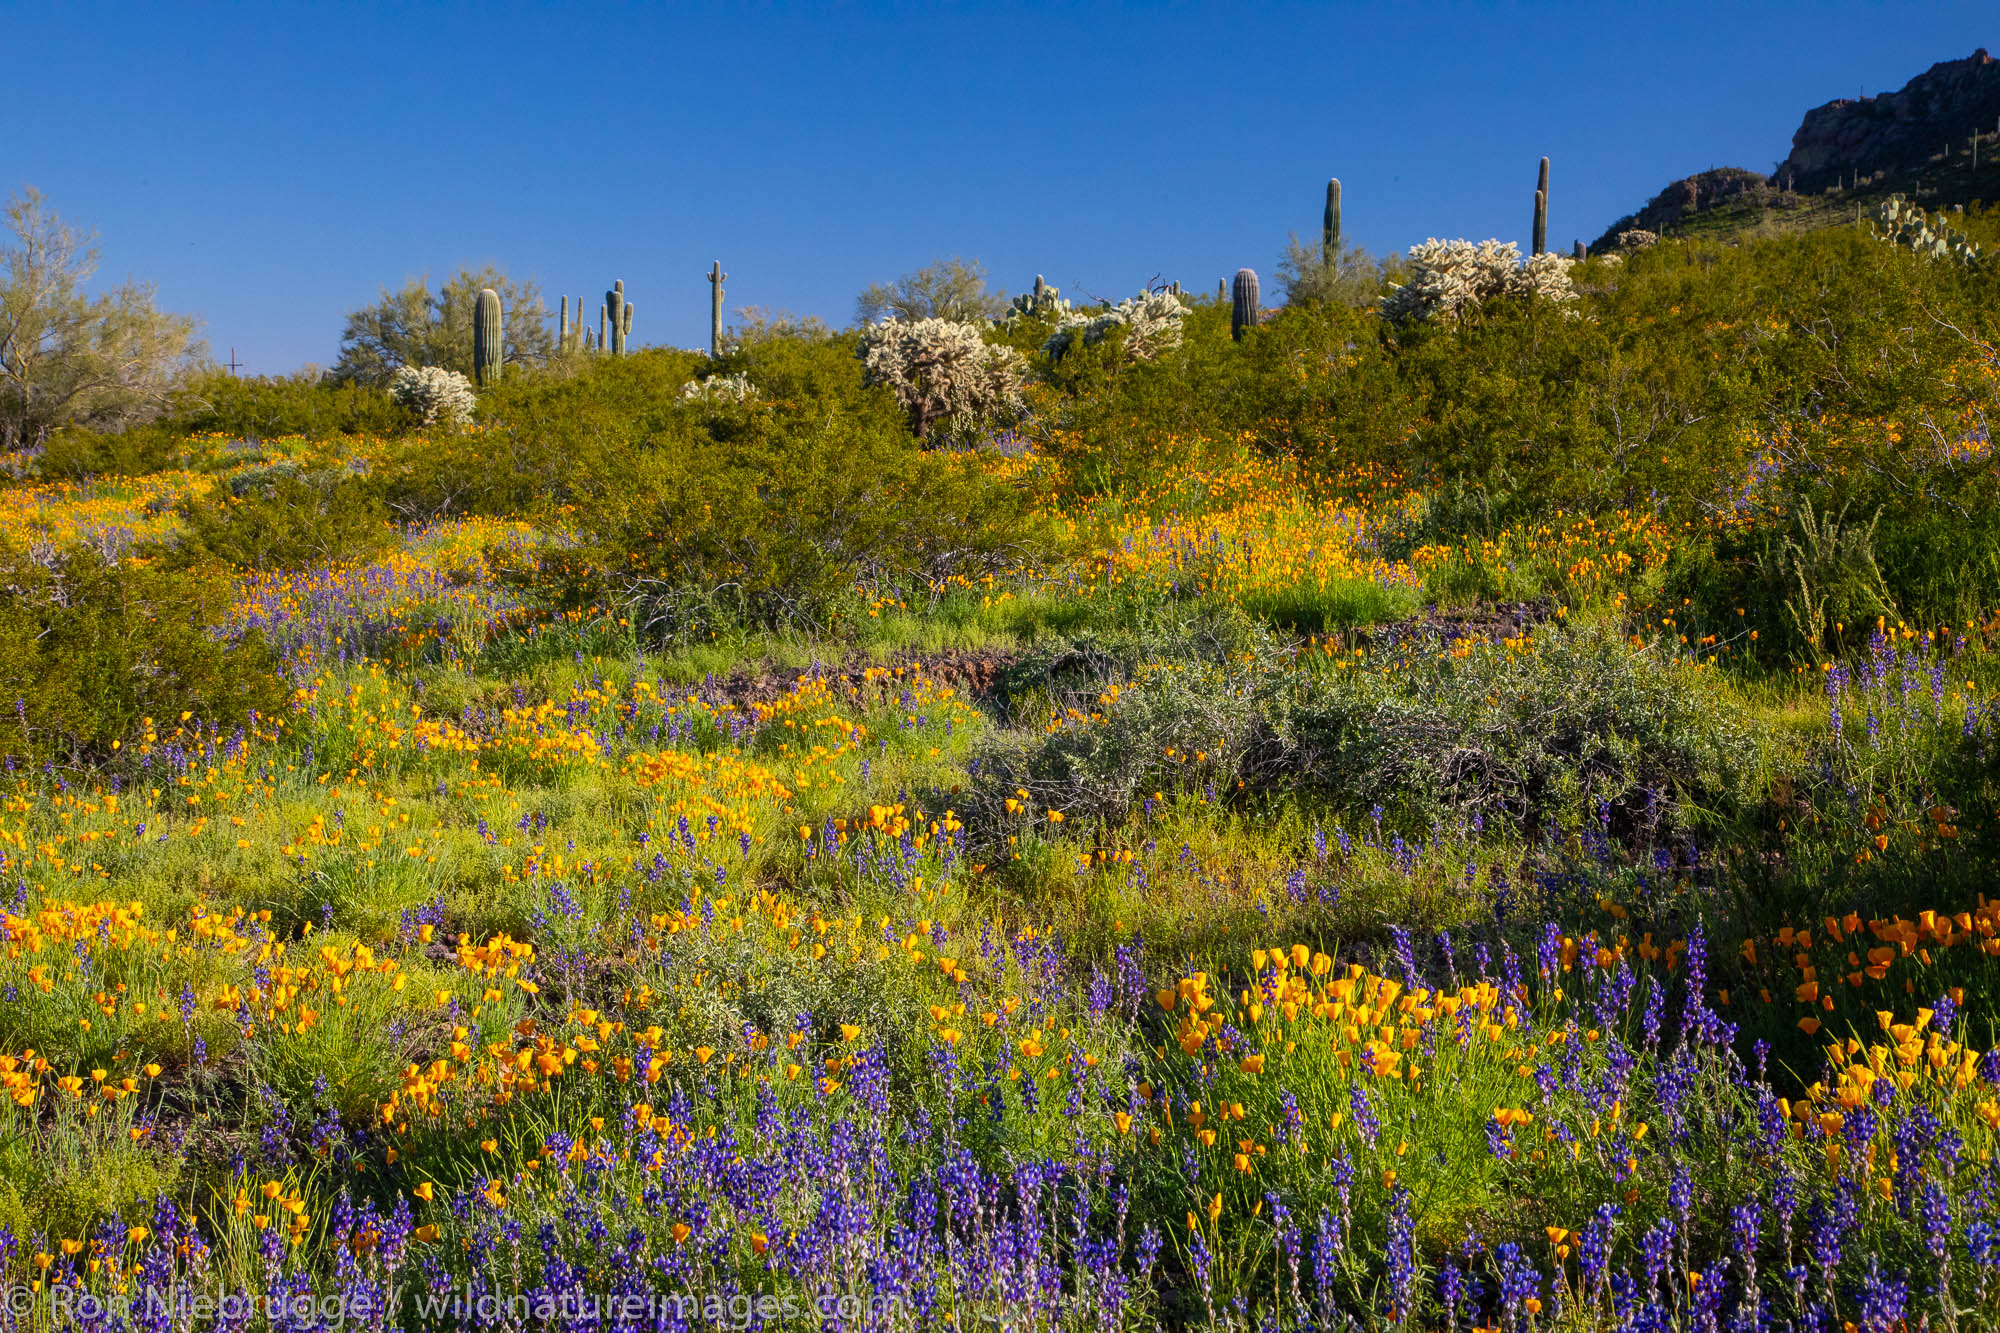 Wildflowers at Picacho Peak State Park, near Tucson, Arizona.